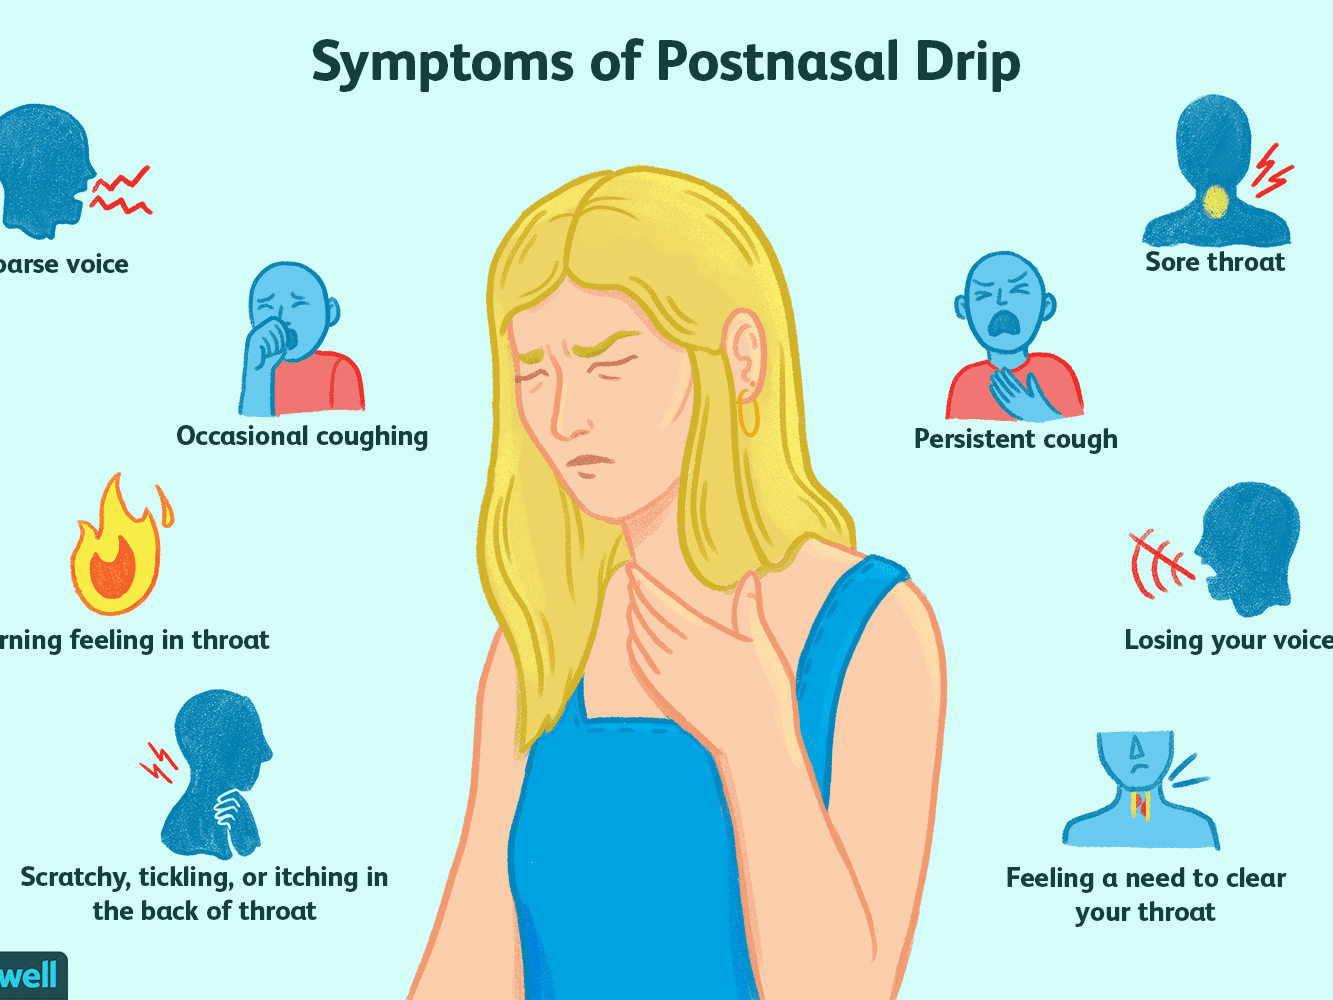 Postnasal Drip: Overview and More